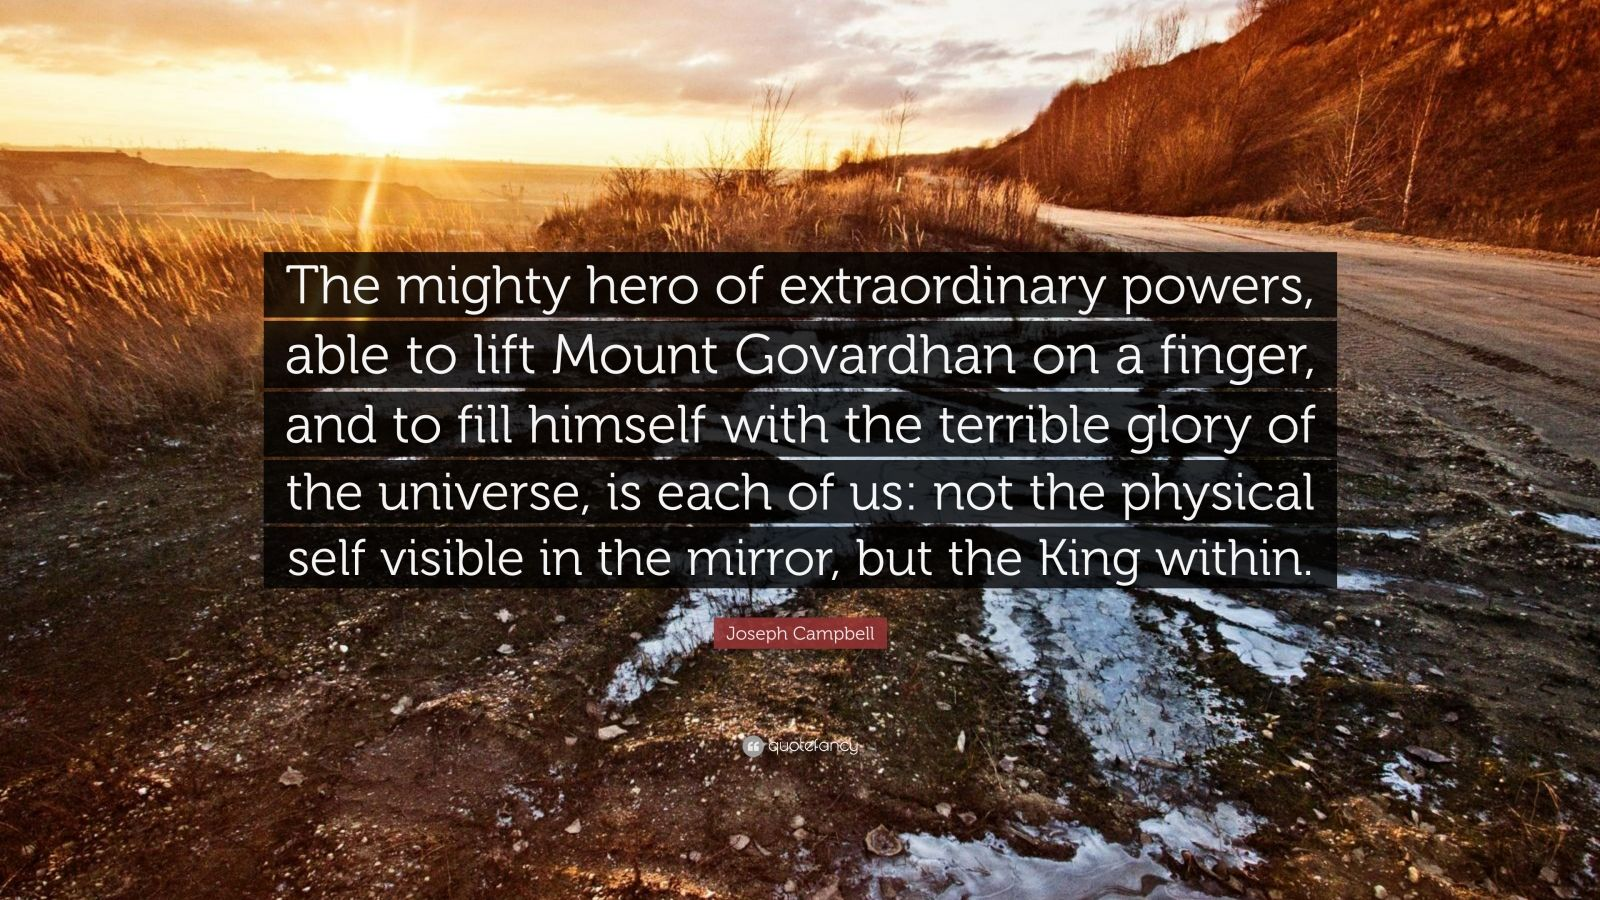 "Joseph Campbell Quote: ""The mighty hero of extraordinary powers, able to lift Mount Govardhan on a finger, and to fill himself with the terrible glory of the universe, is each of us: not the physical self visible in the mirror, but the King within."""